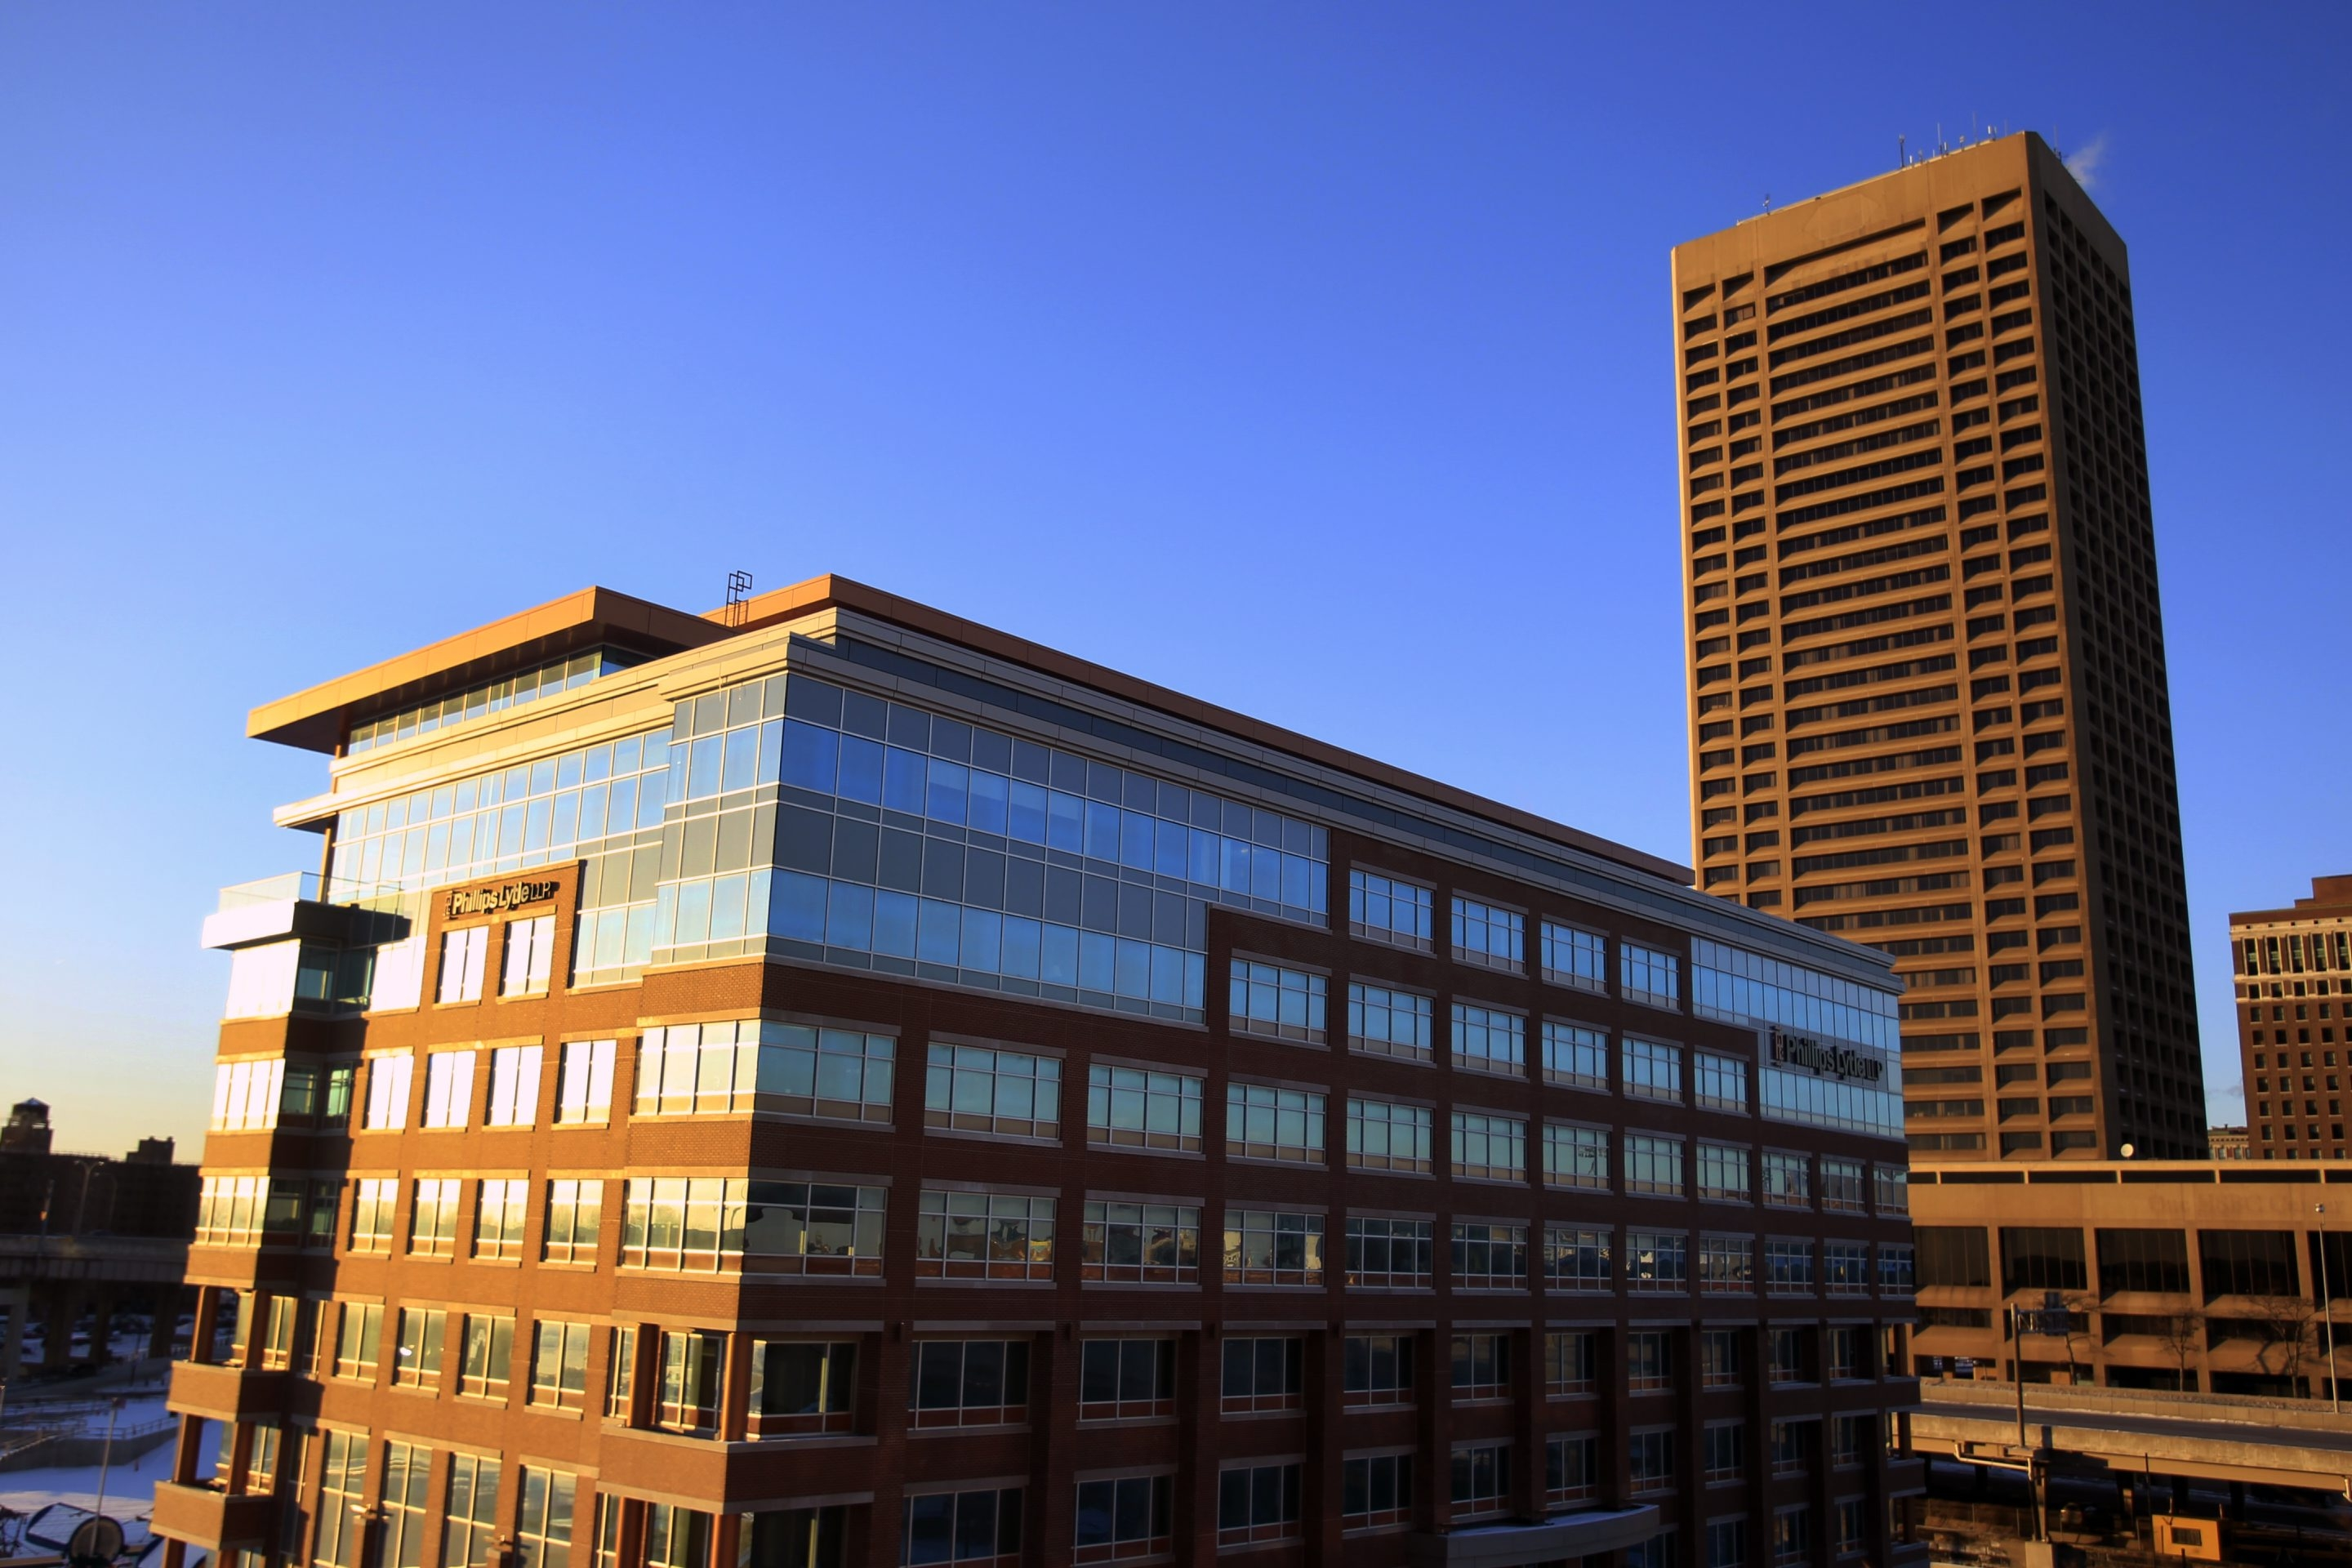 One Seneca Tower, 95 percent vacant, could be convention center, hotel, condos, stores.